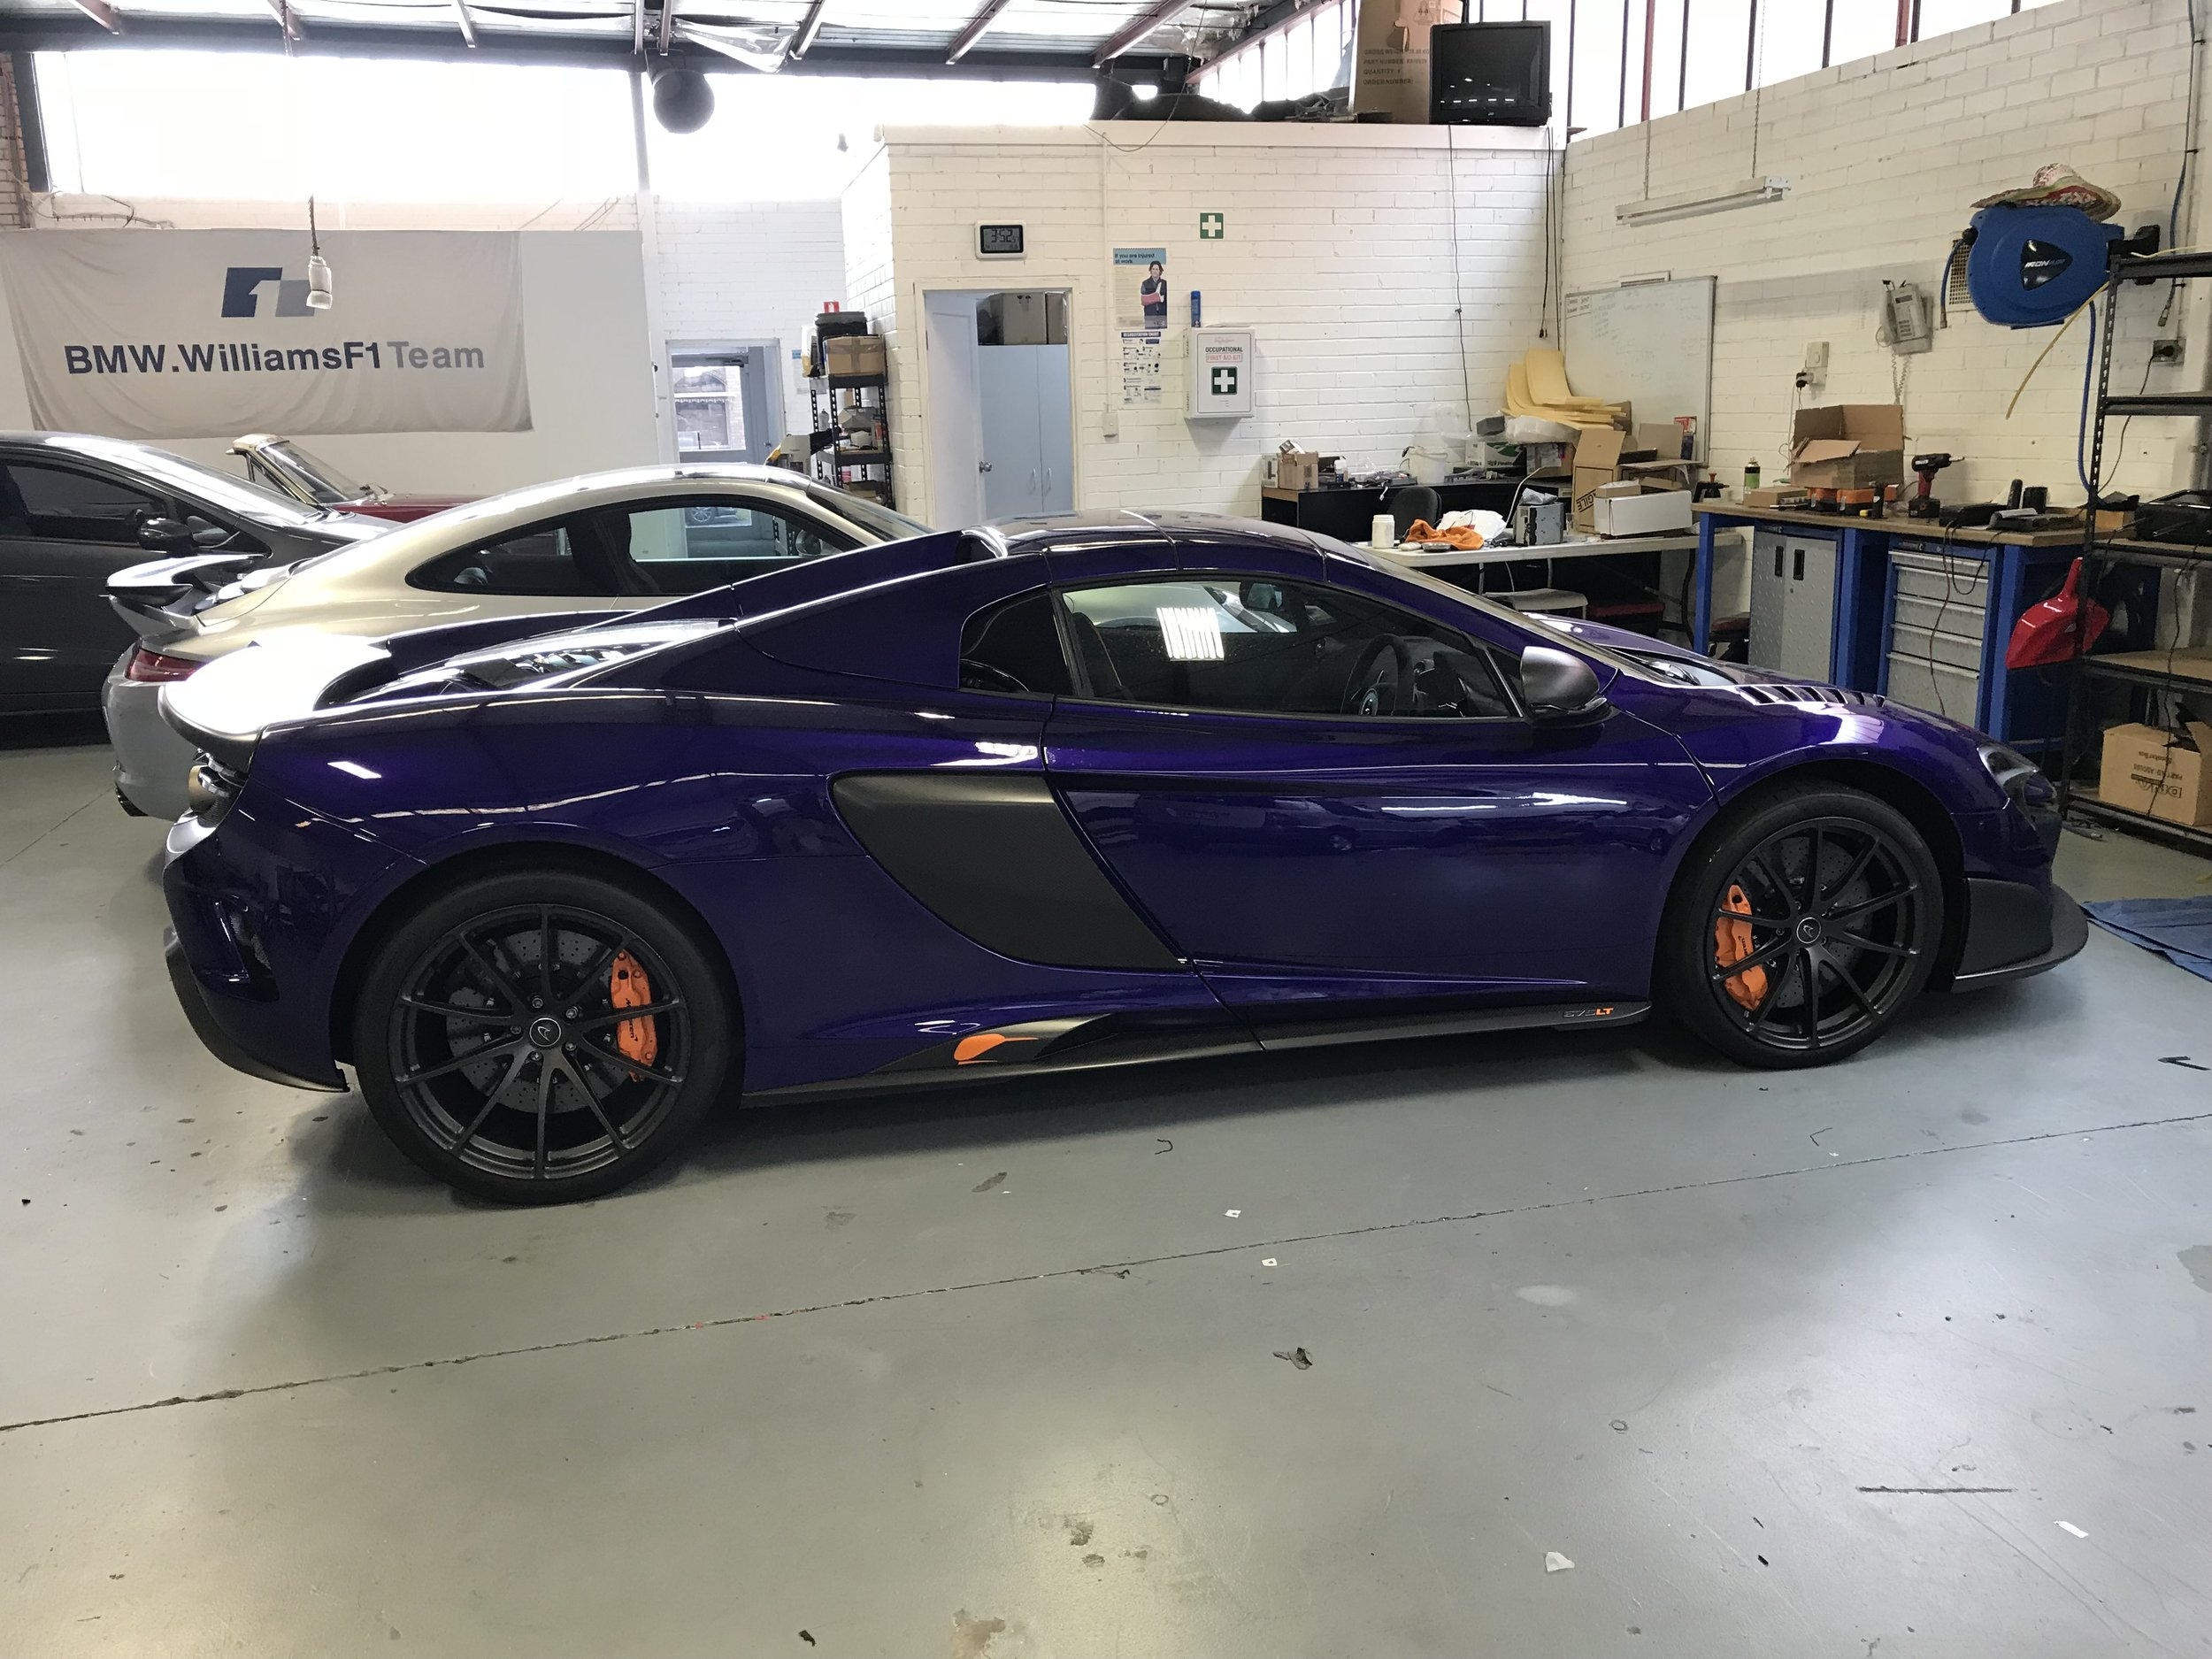 A Mclaren 675LT fitted with AIS tracking